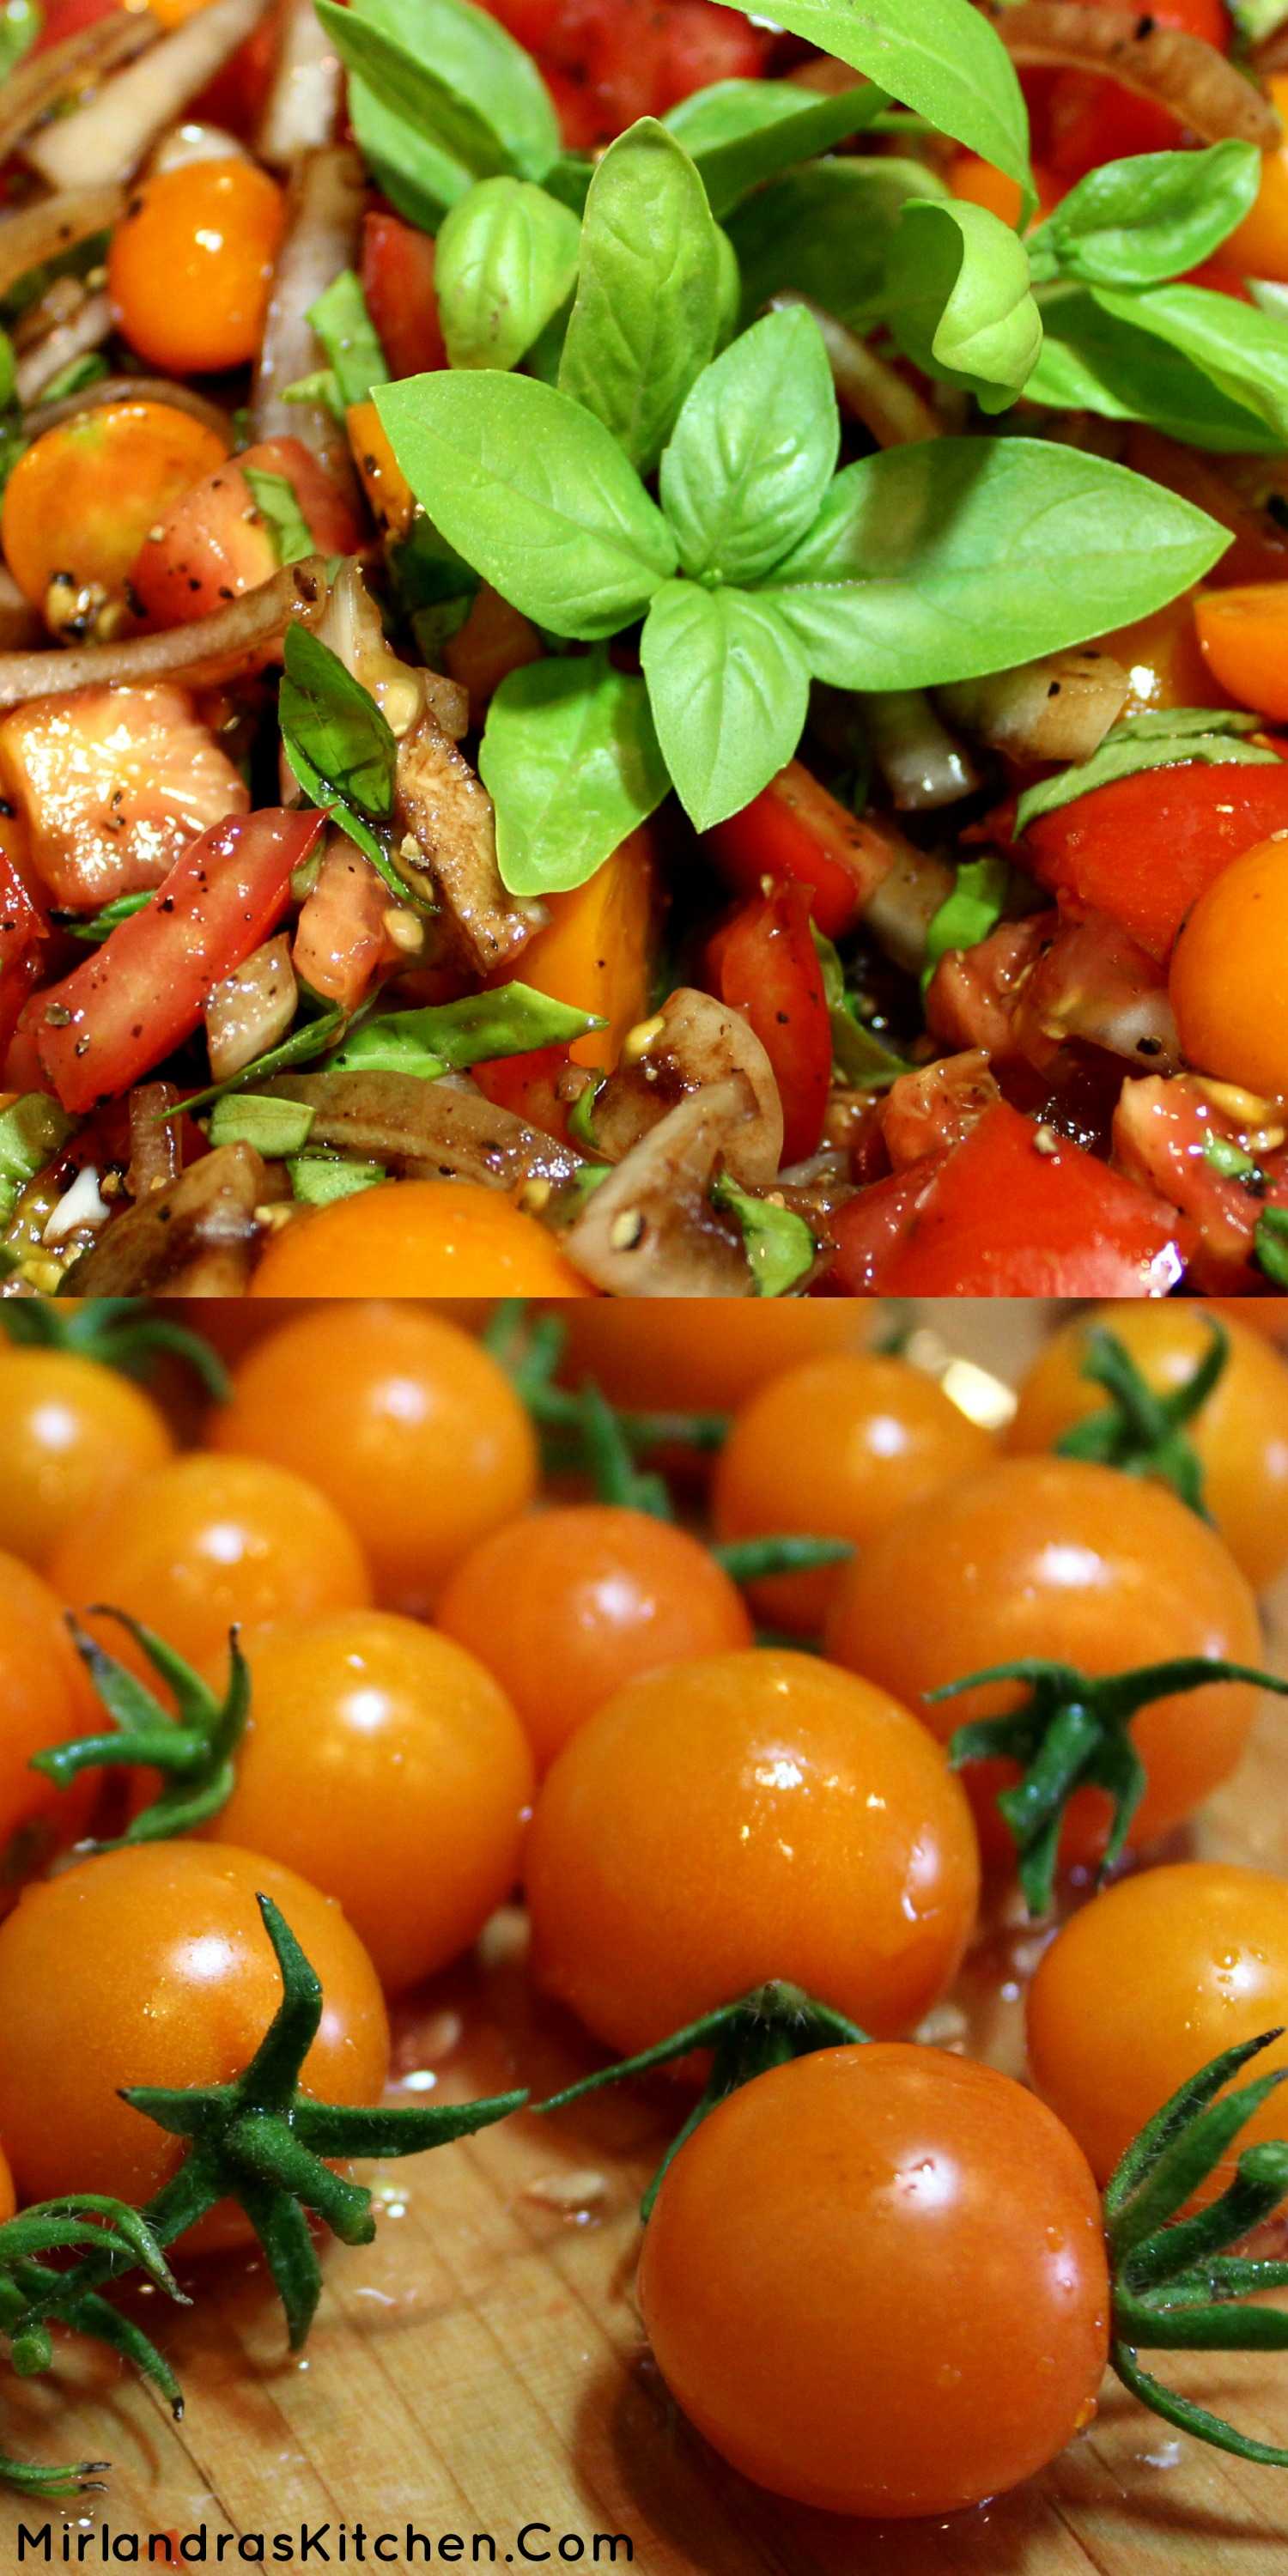 This tomato salad with basil, sweet onions, and reduced balsamic vinegar is easy, healthy, and beautiful. Everybody wants seconds all summer long.